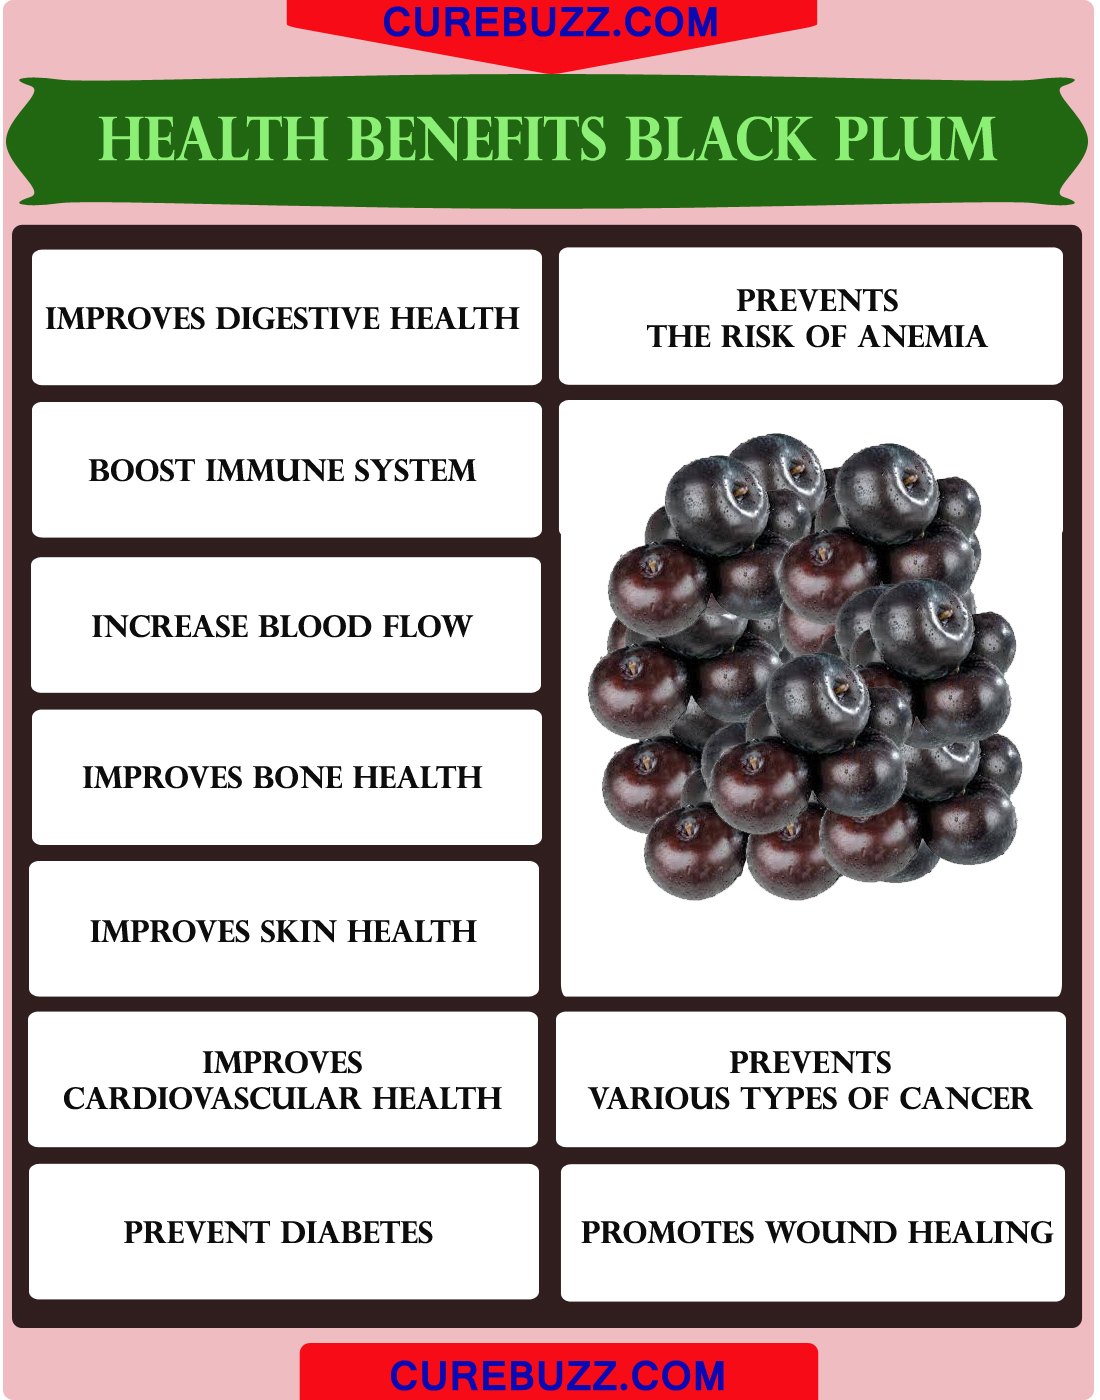 Health Benefits of Black Plum